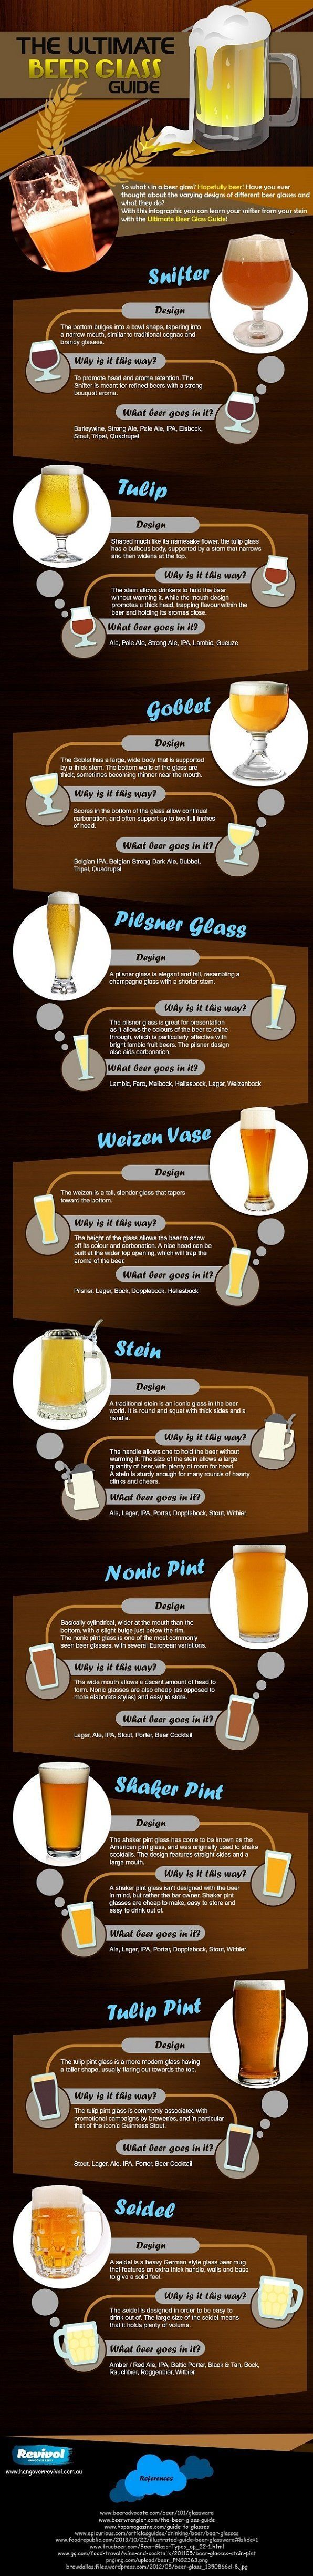 This Is How To Pick The Right Glass For The Right Beer